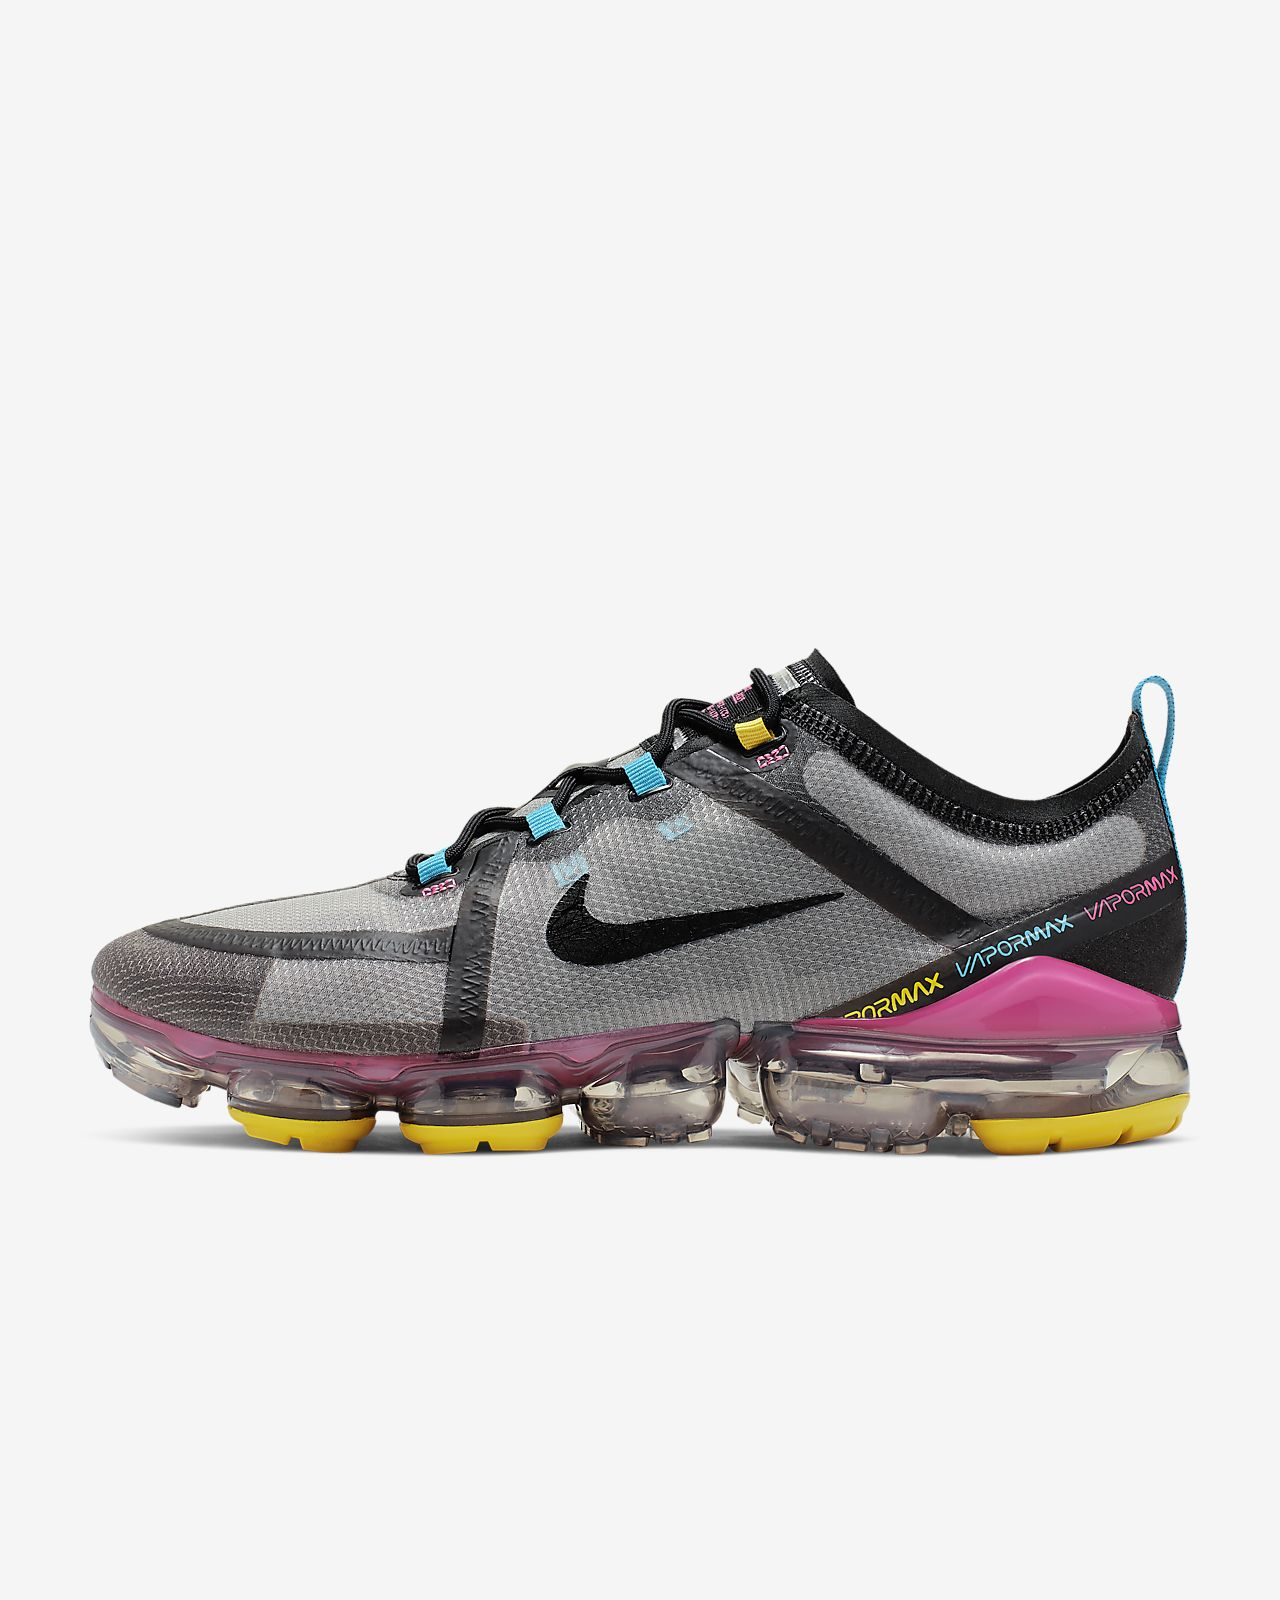 9d218e2a7551 Nike Air VaporMax 2019 Men s Shoe. Nike.com